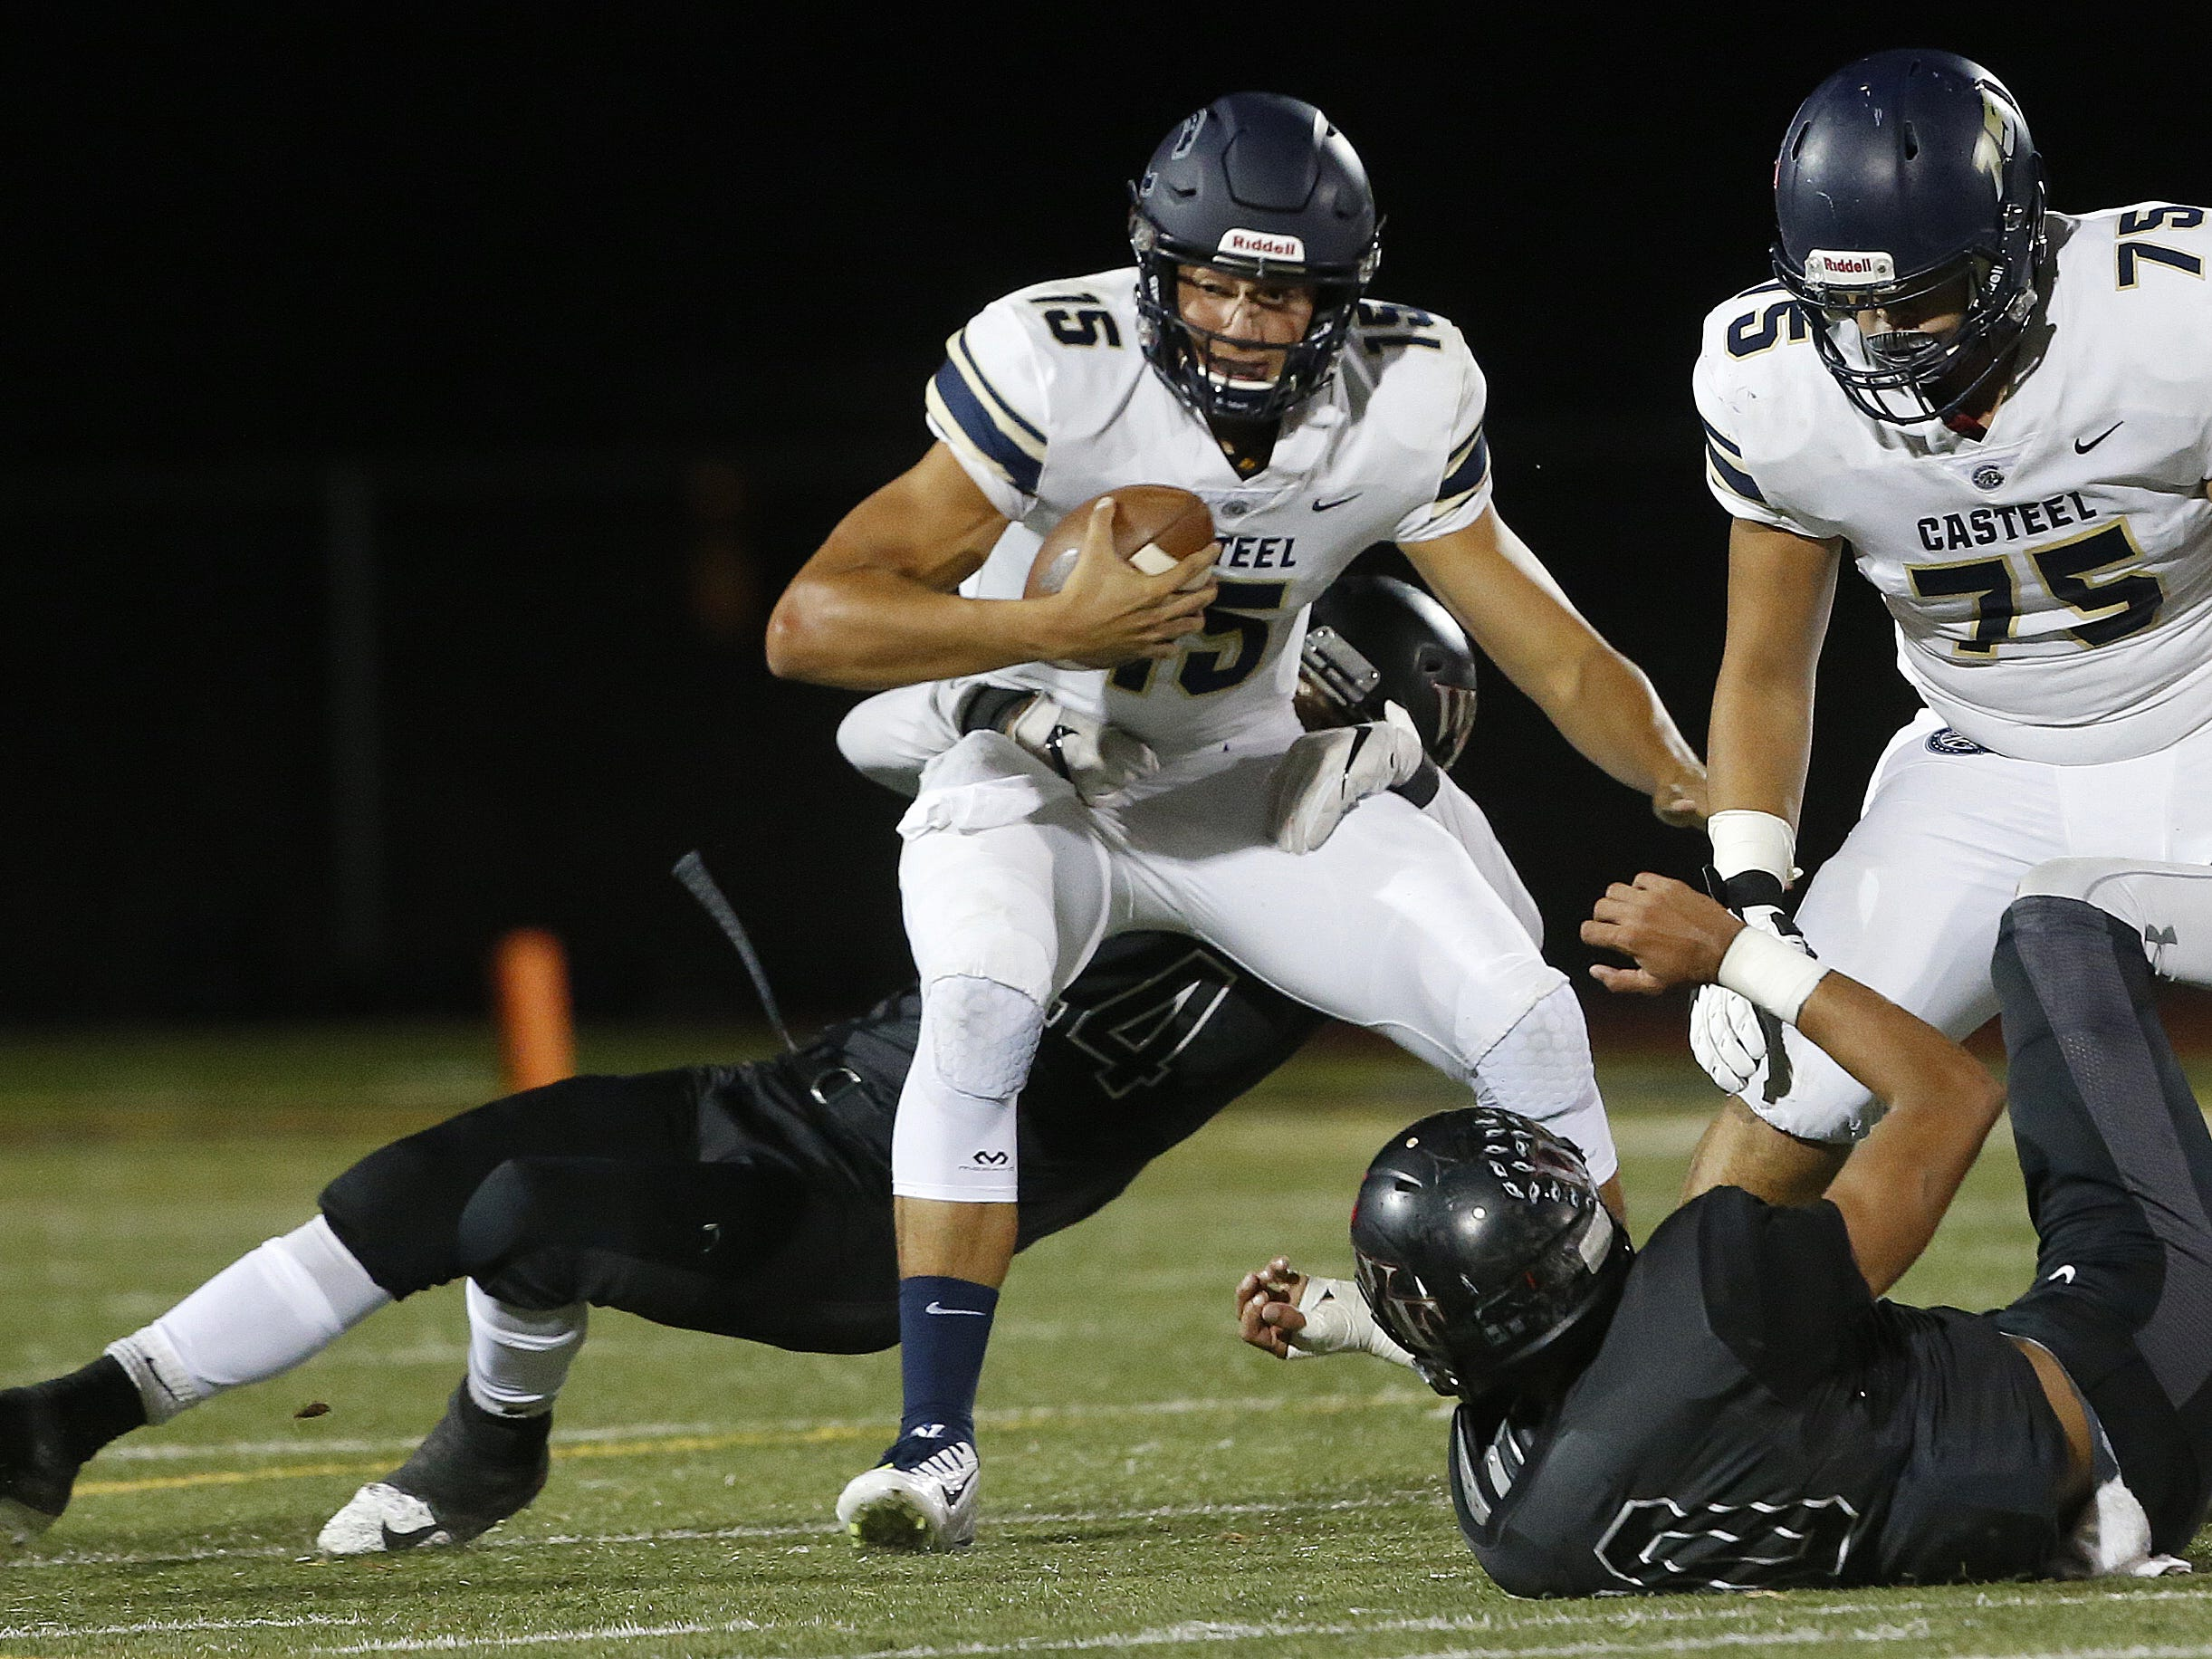 Williams Field's Collin Knight (54) sacks Casteel's Gunner Cruz (15) at Williams Field High School in Gilbert, Ariz. on Sept. 21, 2018.  #azhsfb